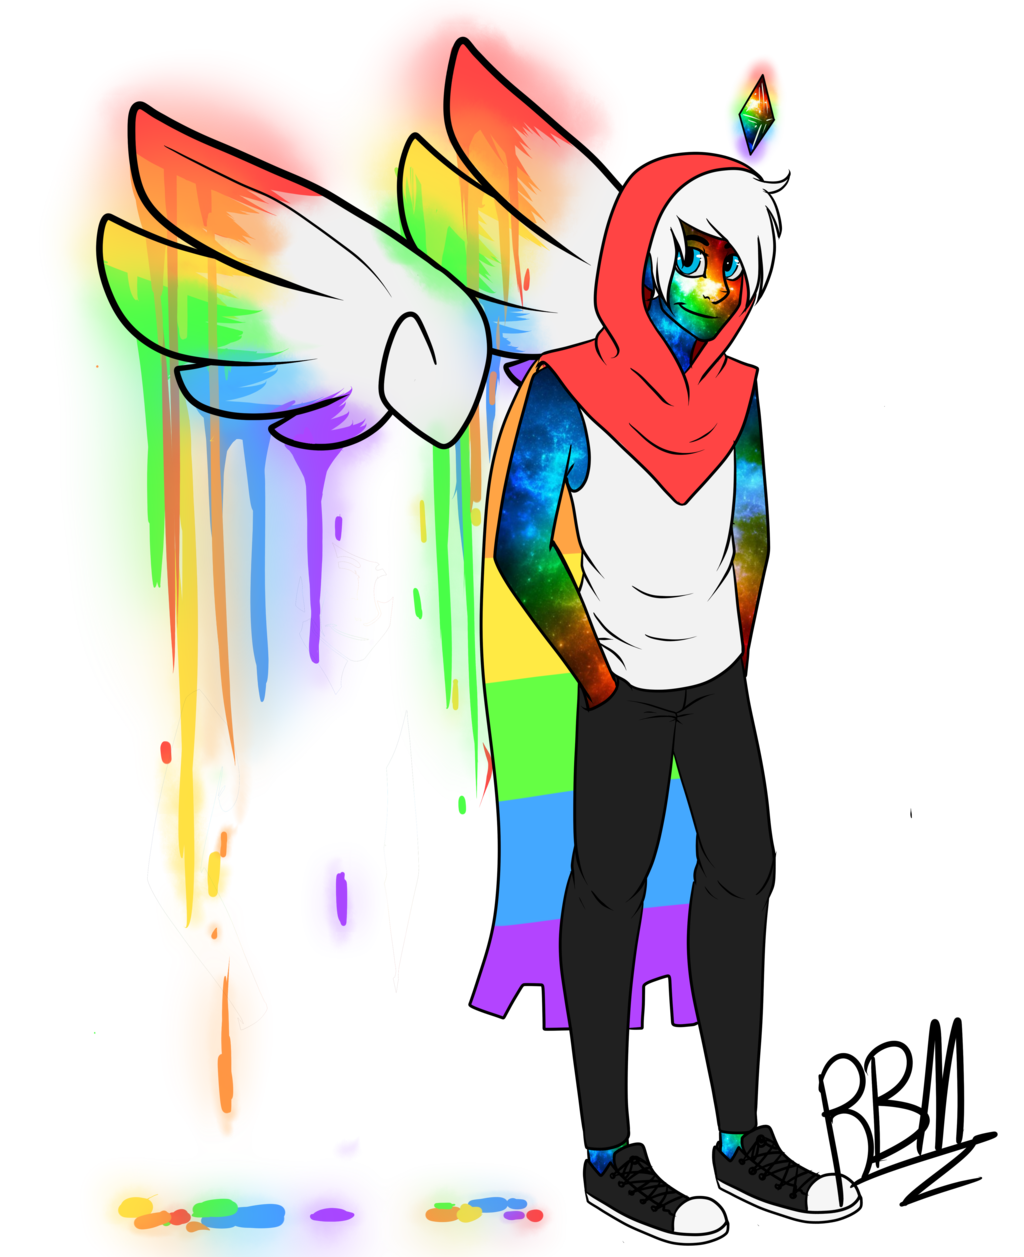 Androgynous drawing lgbtq pride. Collection of lgbt